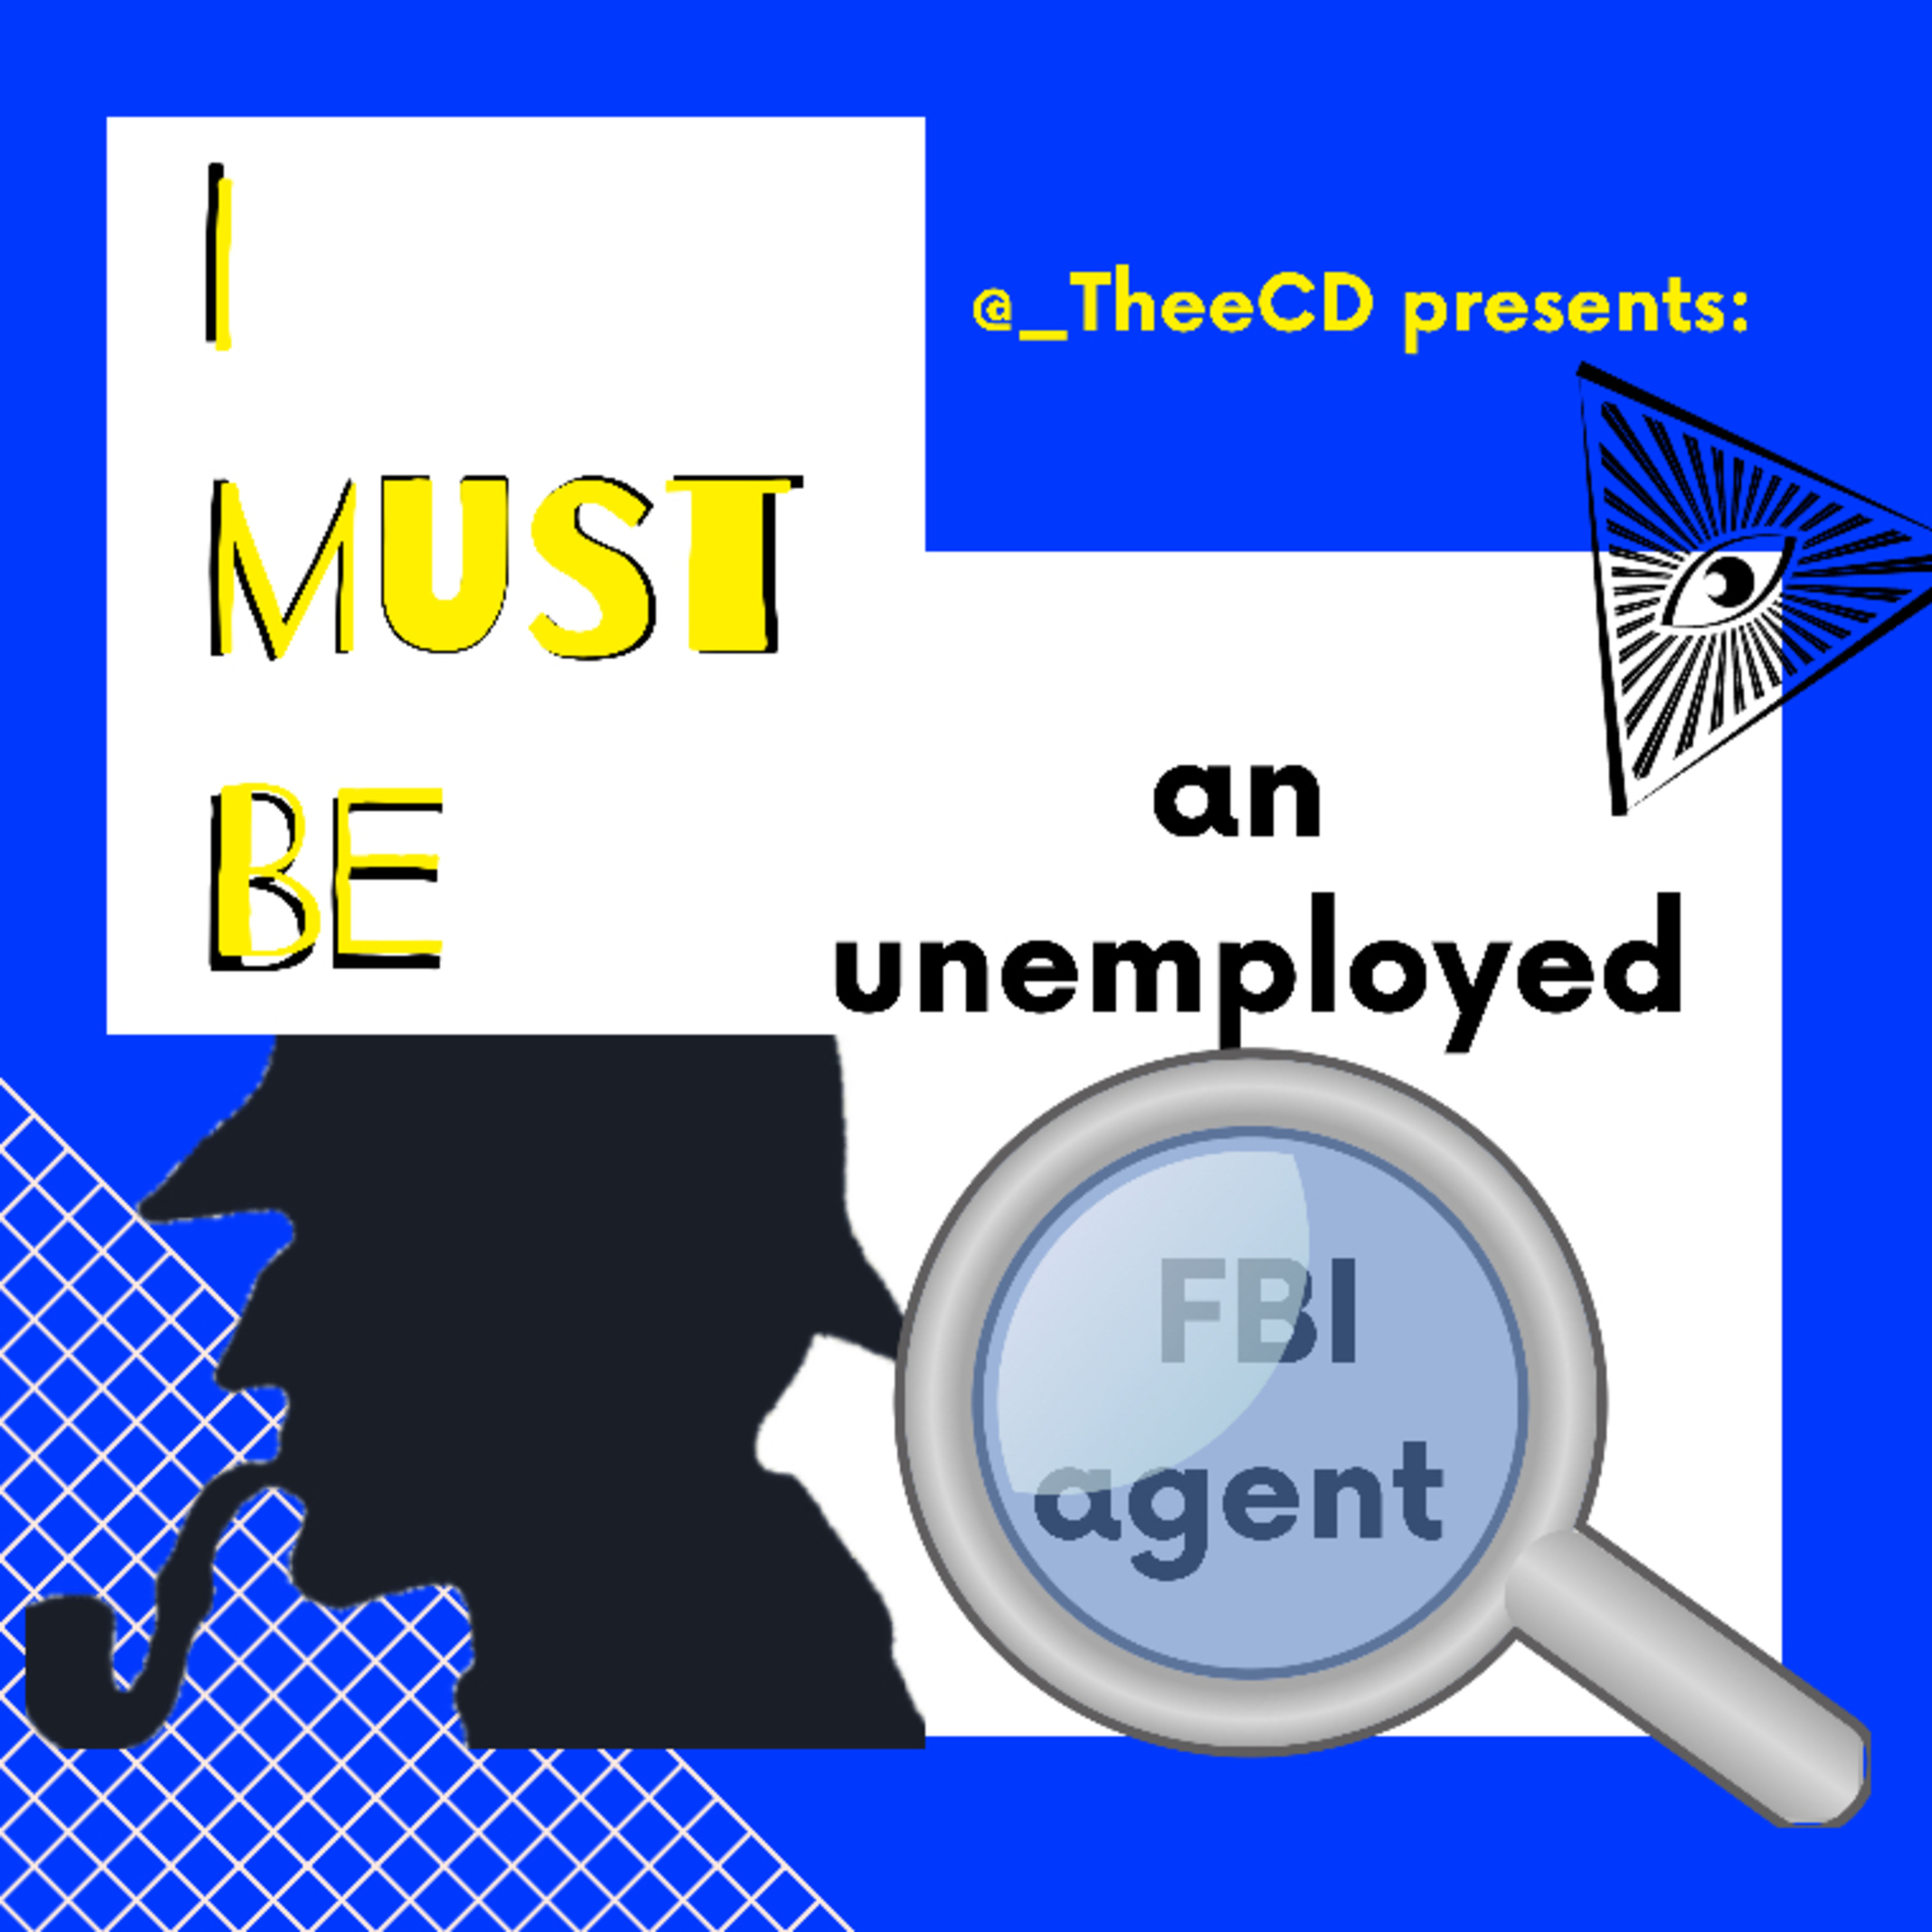 I must be ... AN UNEMPLOYED FBI AGENT